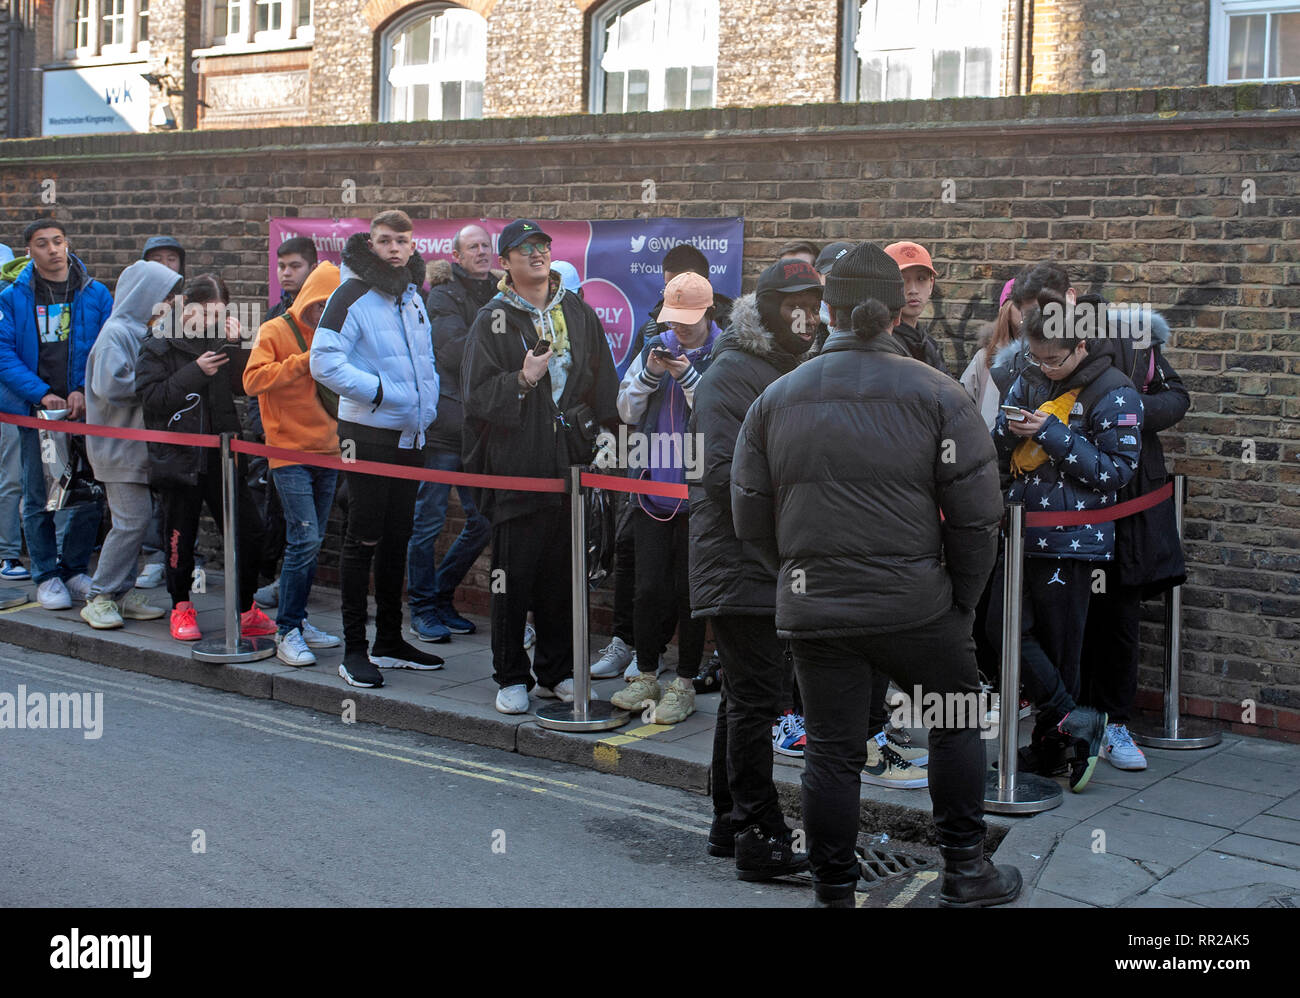 London, UK, 23 February 2019, Hundreds queue at cult skateboard clothing shop Supreme in Peter street in the heart of  Soho as they launch their spring & summer range. Credit: JOHNNY ARMSTEAD/Alamy Live News Stock Photo